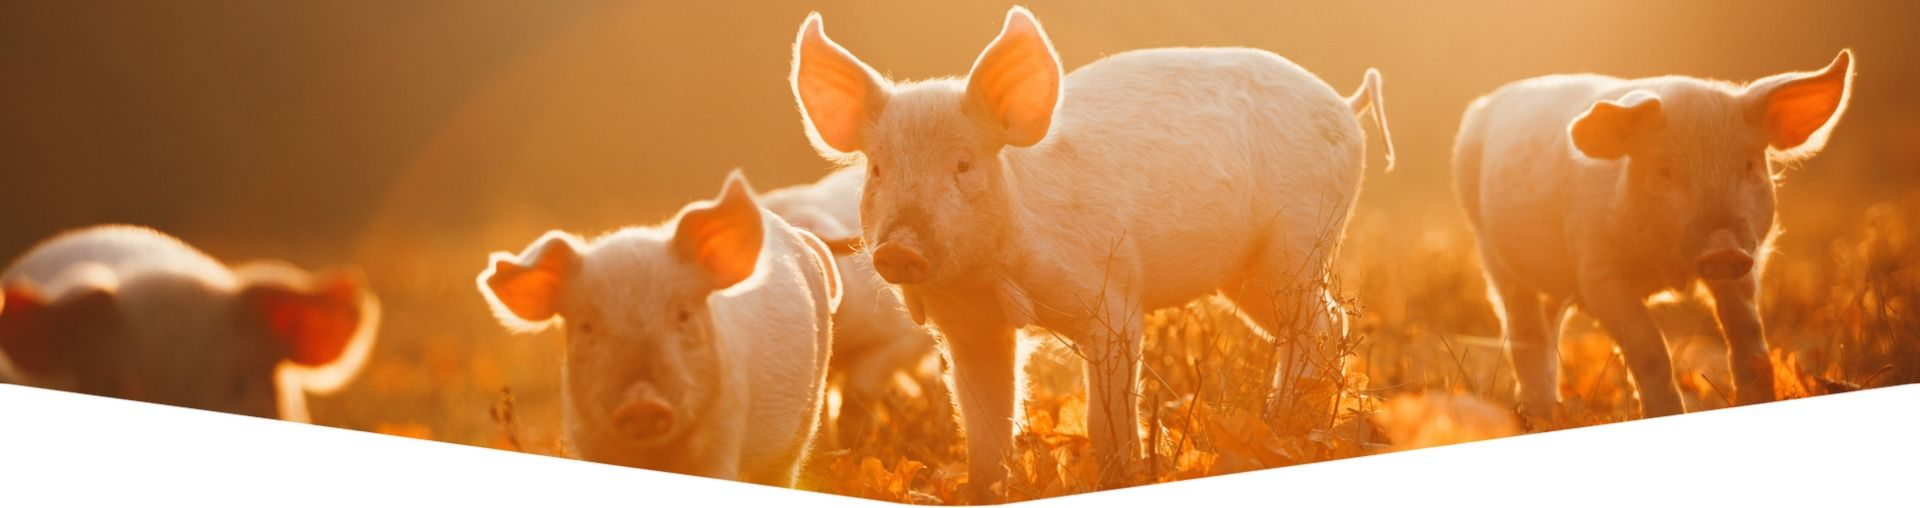 Swine Record Keeping Software Development